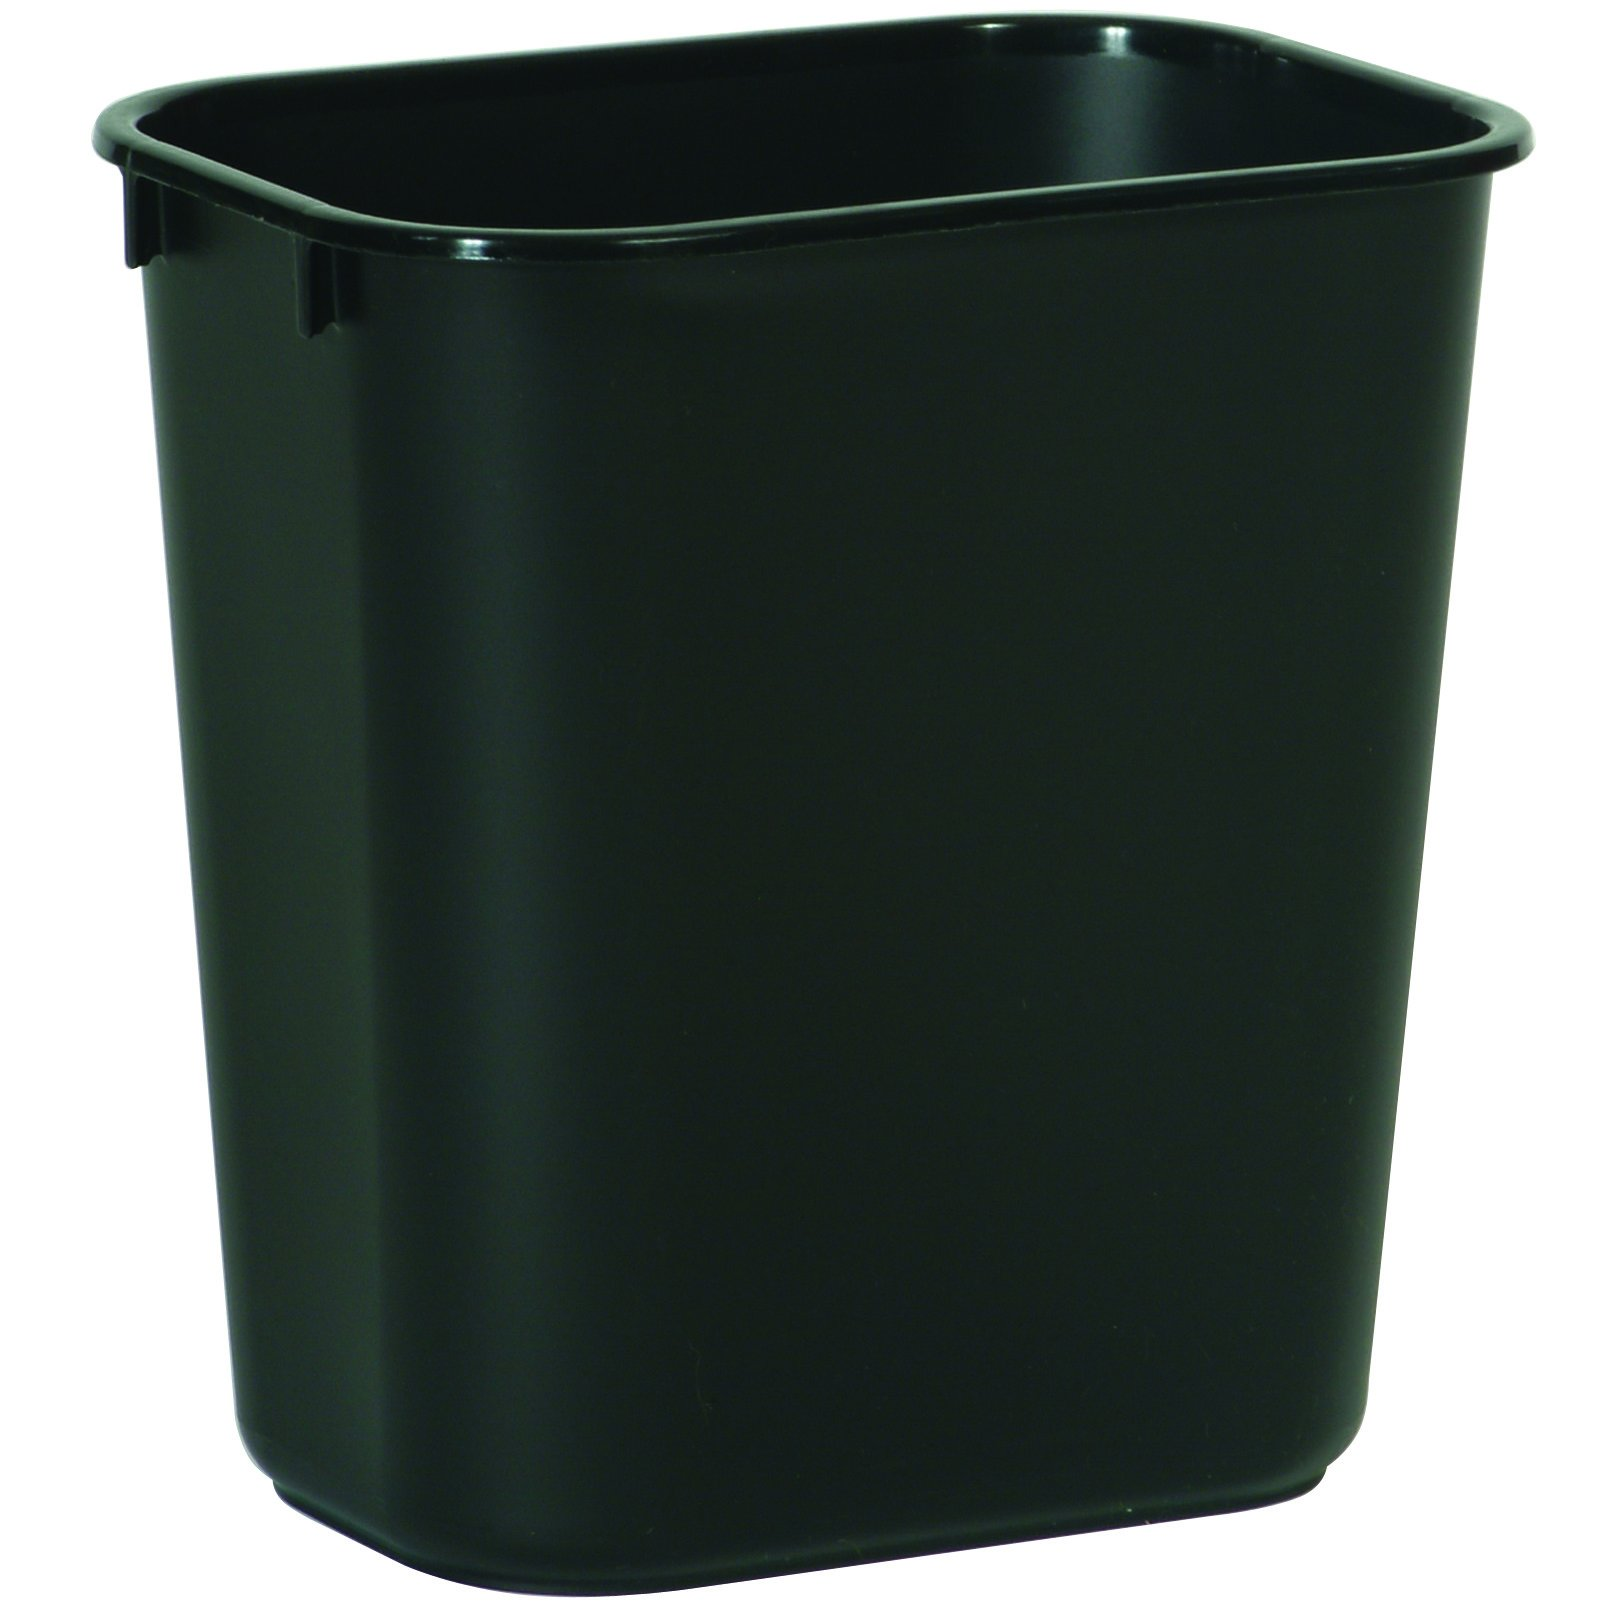 Rubbermaid Commercial Deskside Wastebasket, 3.5-gallon, Small, Black (FG295500BLA) (Pack of 12) by Rubbermaid